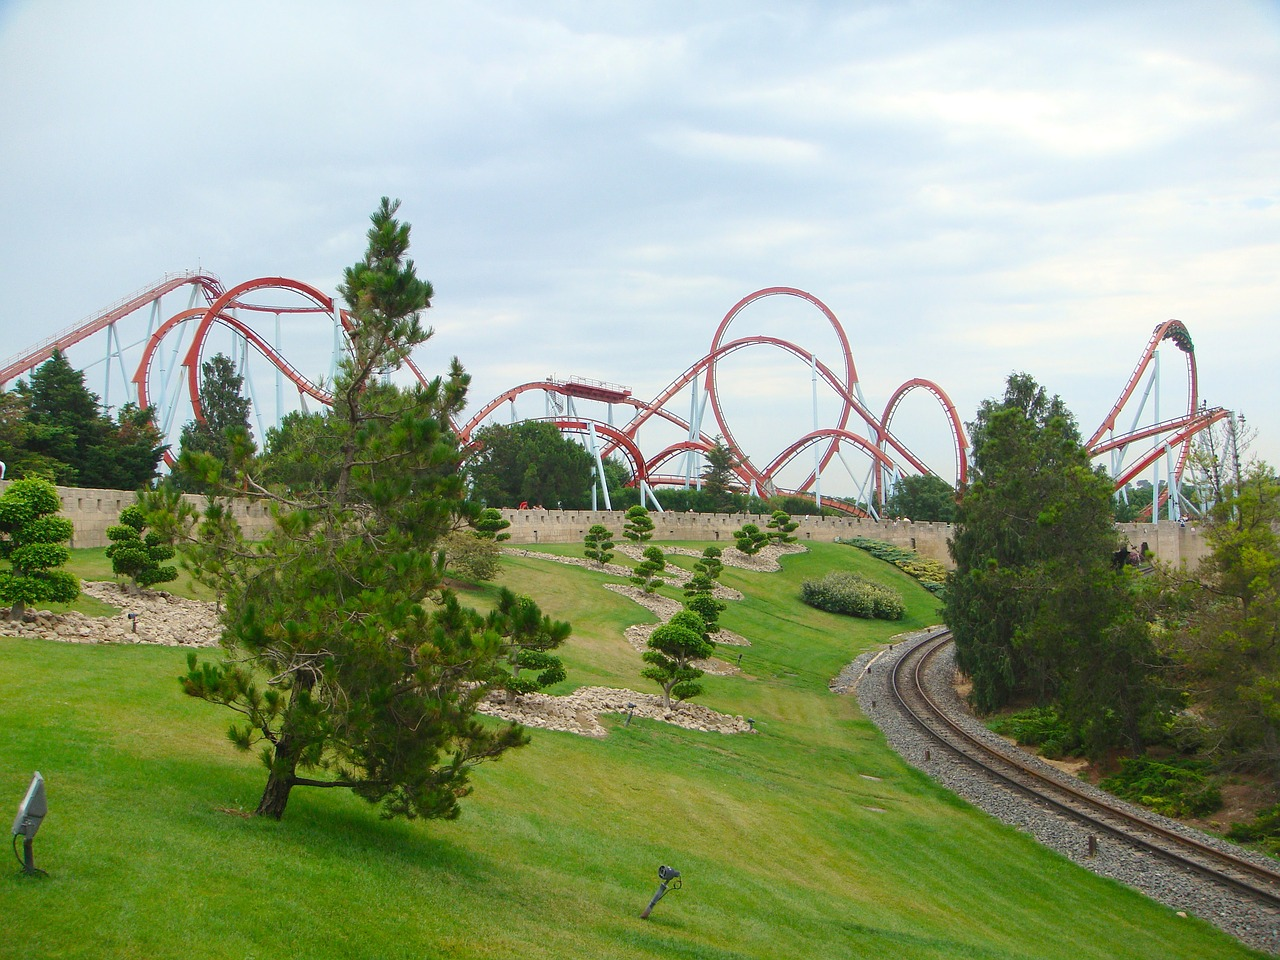 catalonia spain amusement park free photo